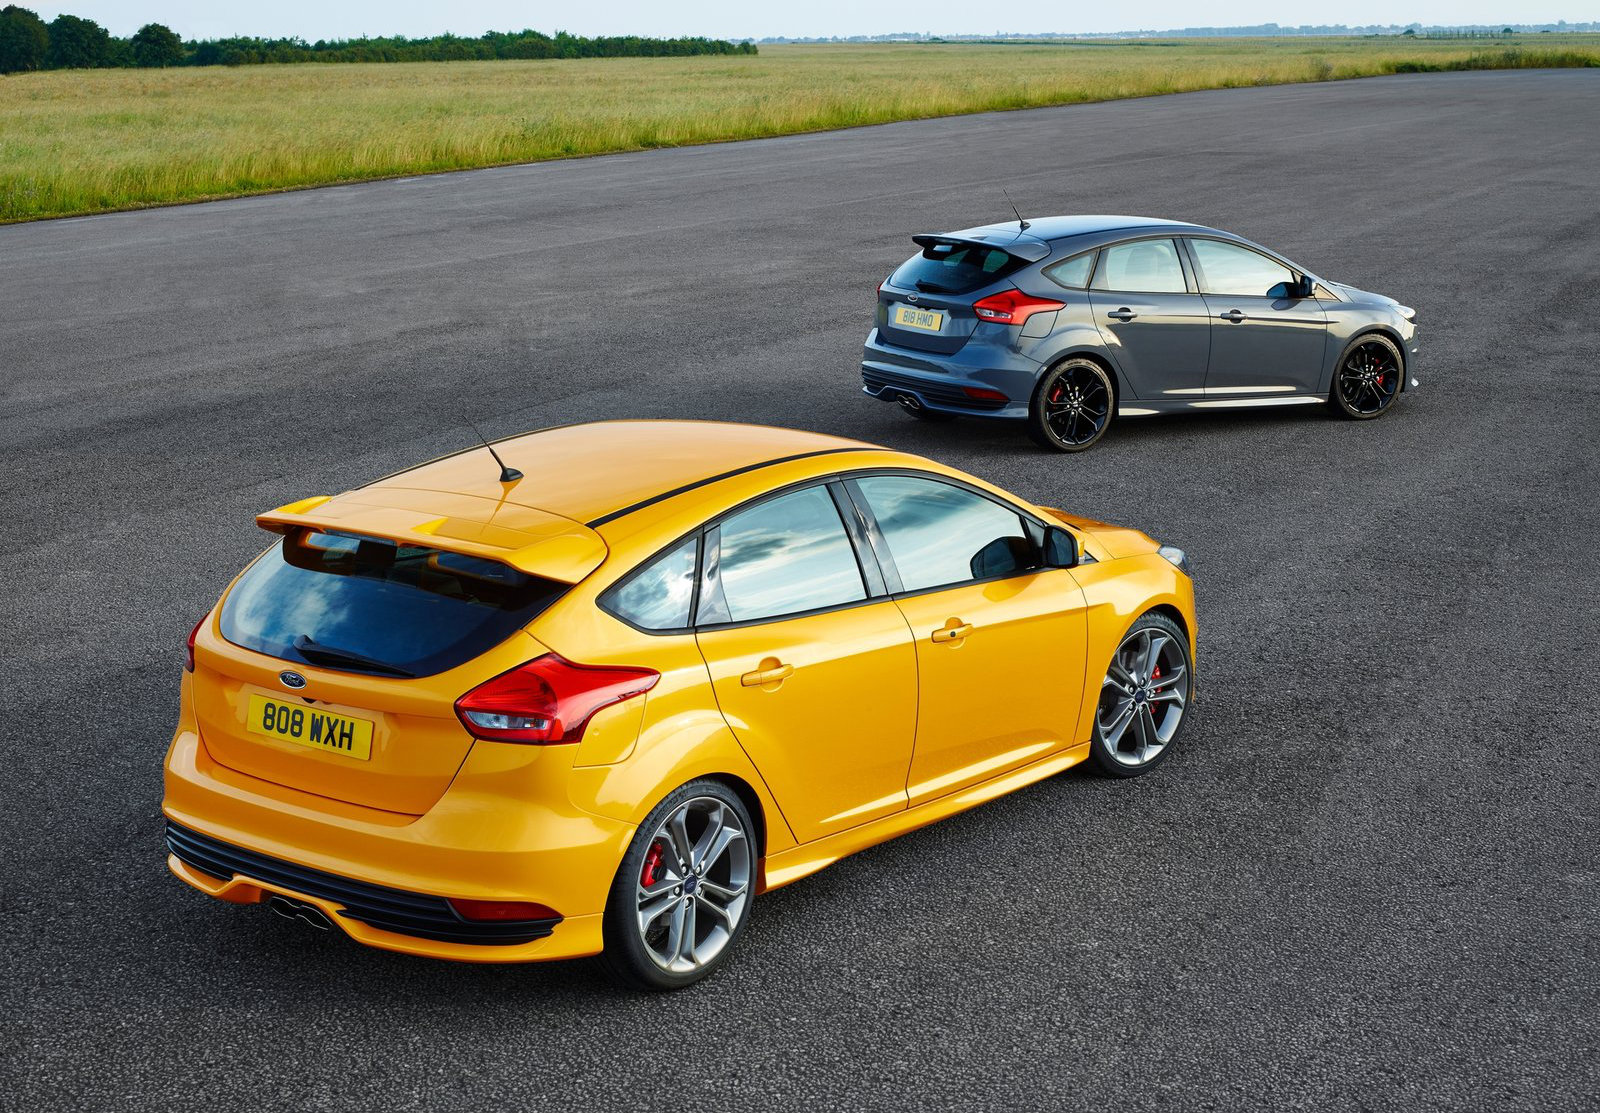 2015 ford focus st here s how much it costs in europe. Black Bedroom Furniture Sets. Home Design Ideas